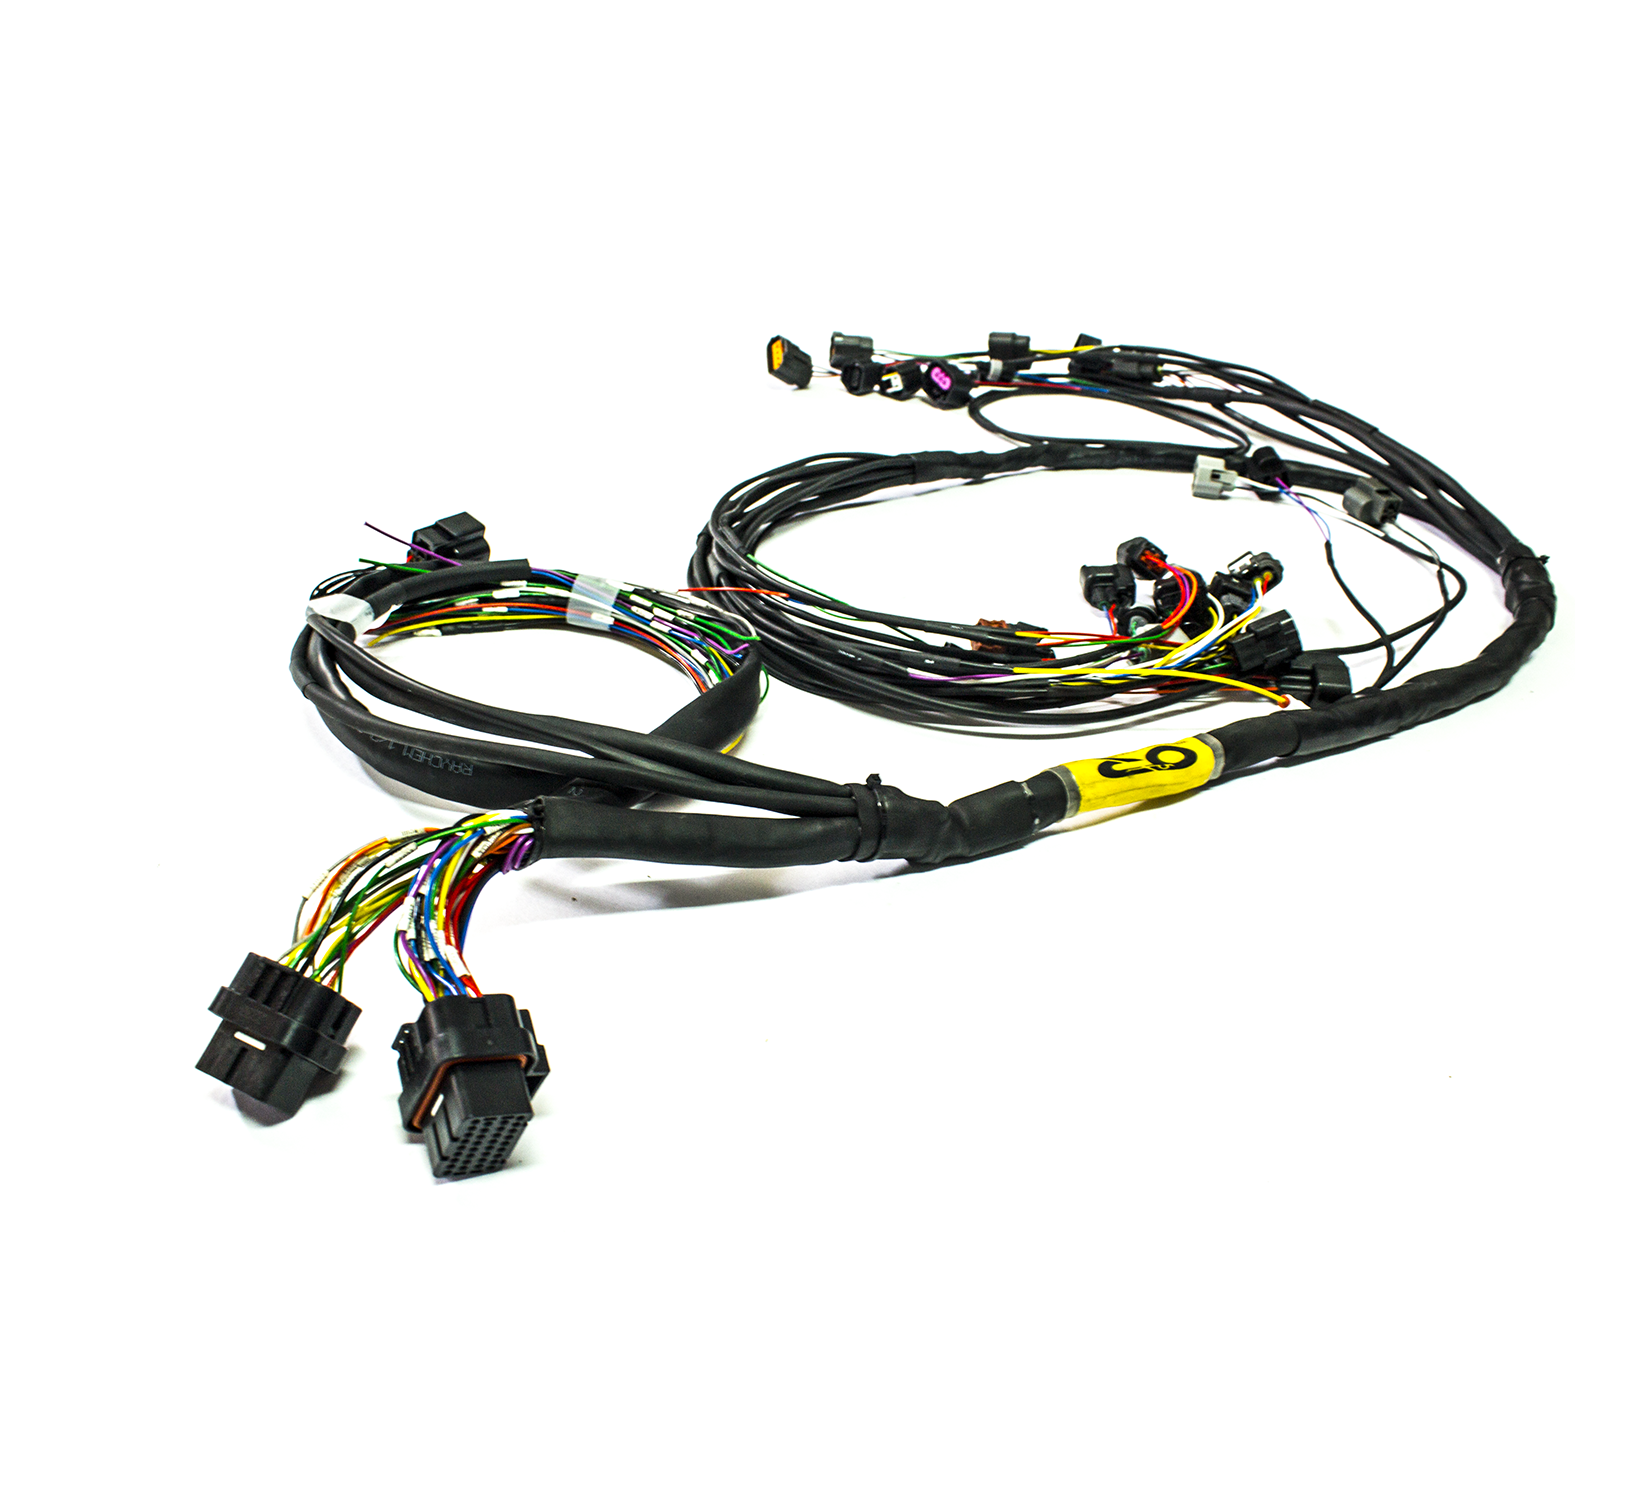 Evo X Tucked Mil Spec Harness Mt Ohm Racing